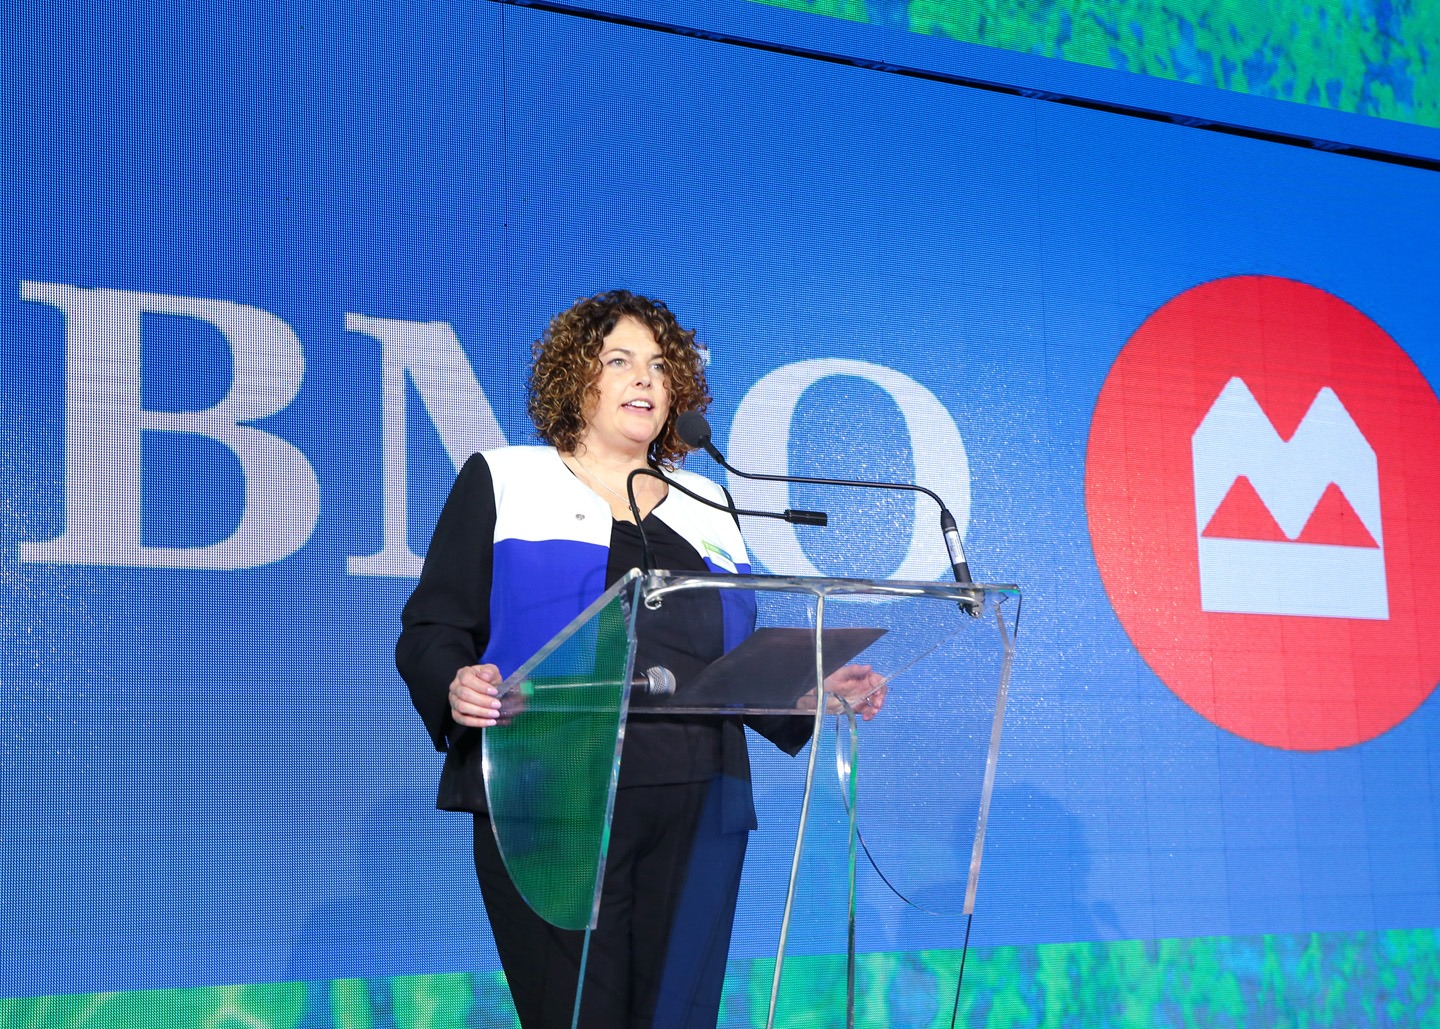 BMO Sponsor of WOE